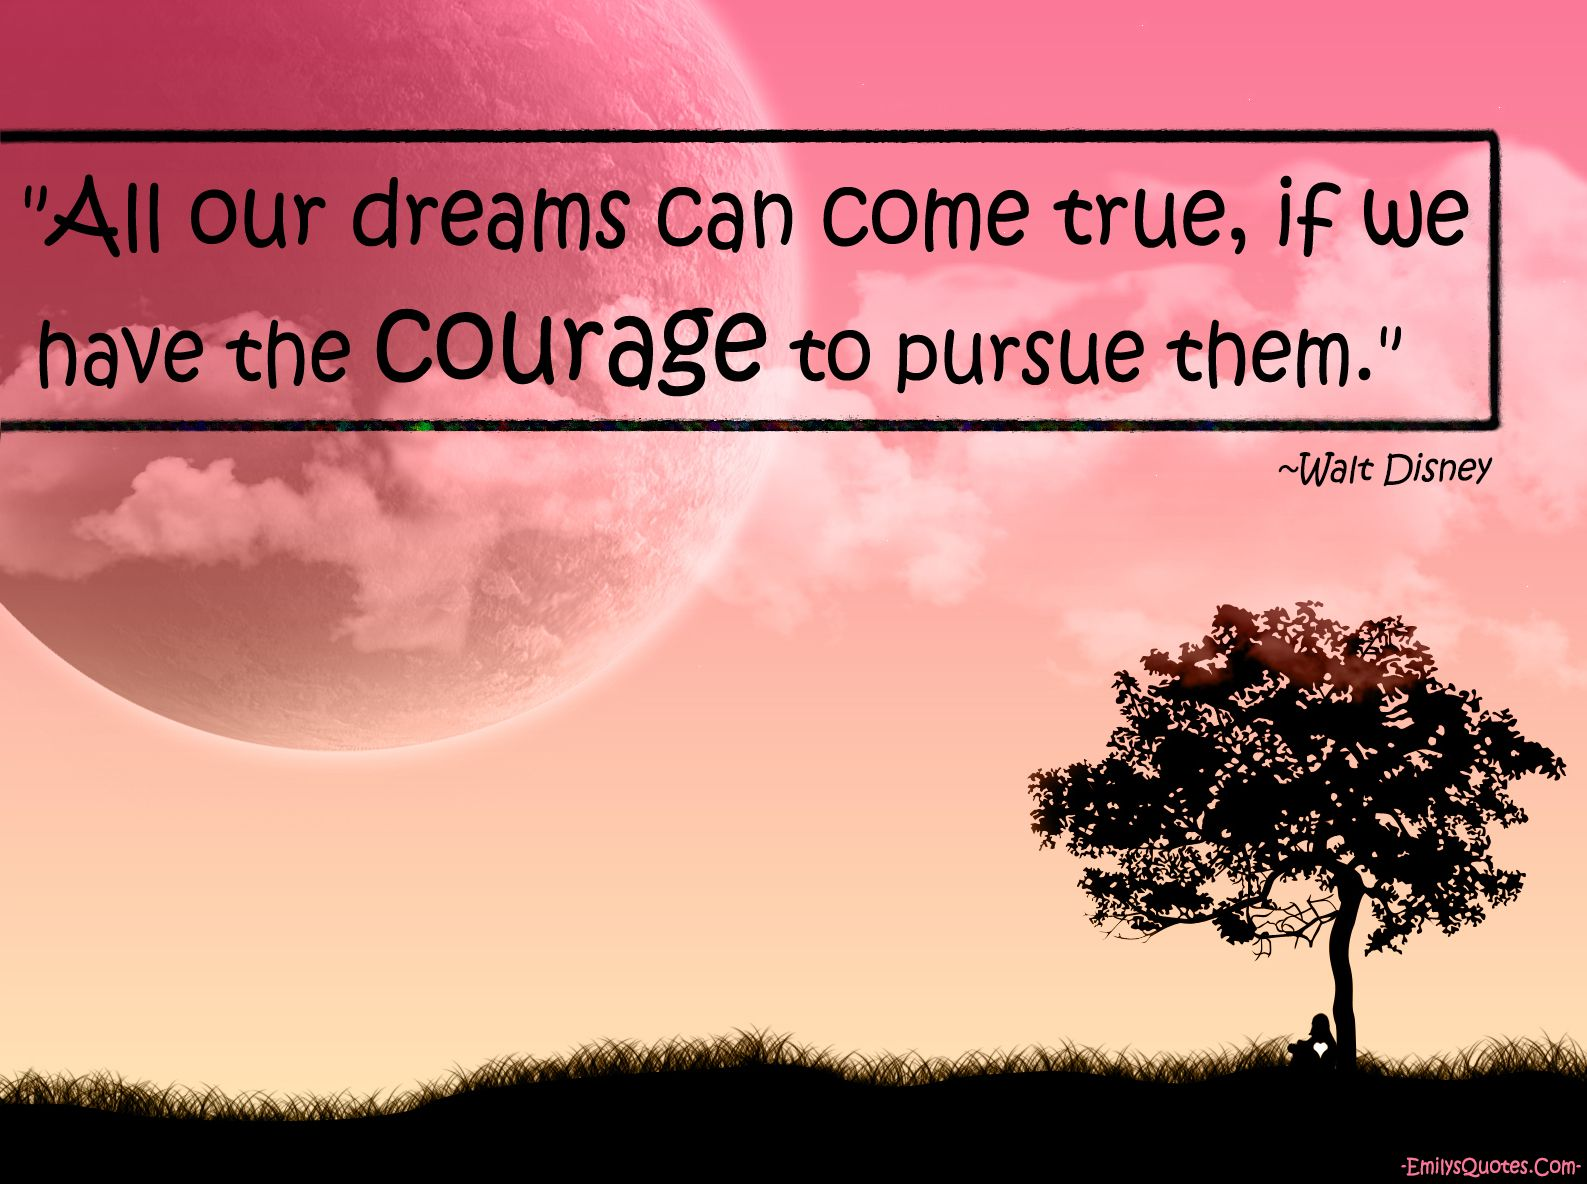 all our dreams can come true, if we have the courage to pursue